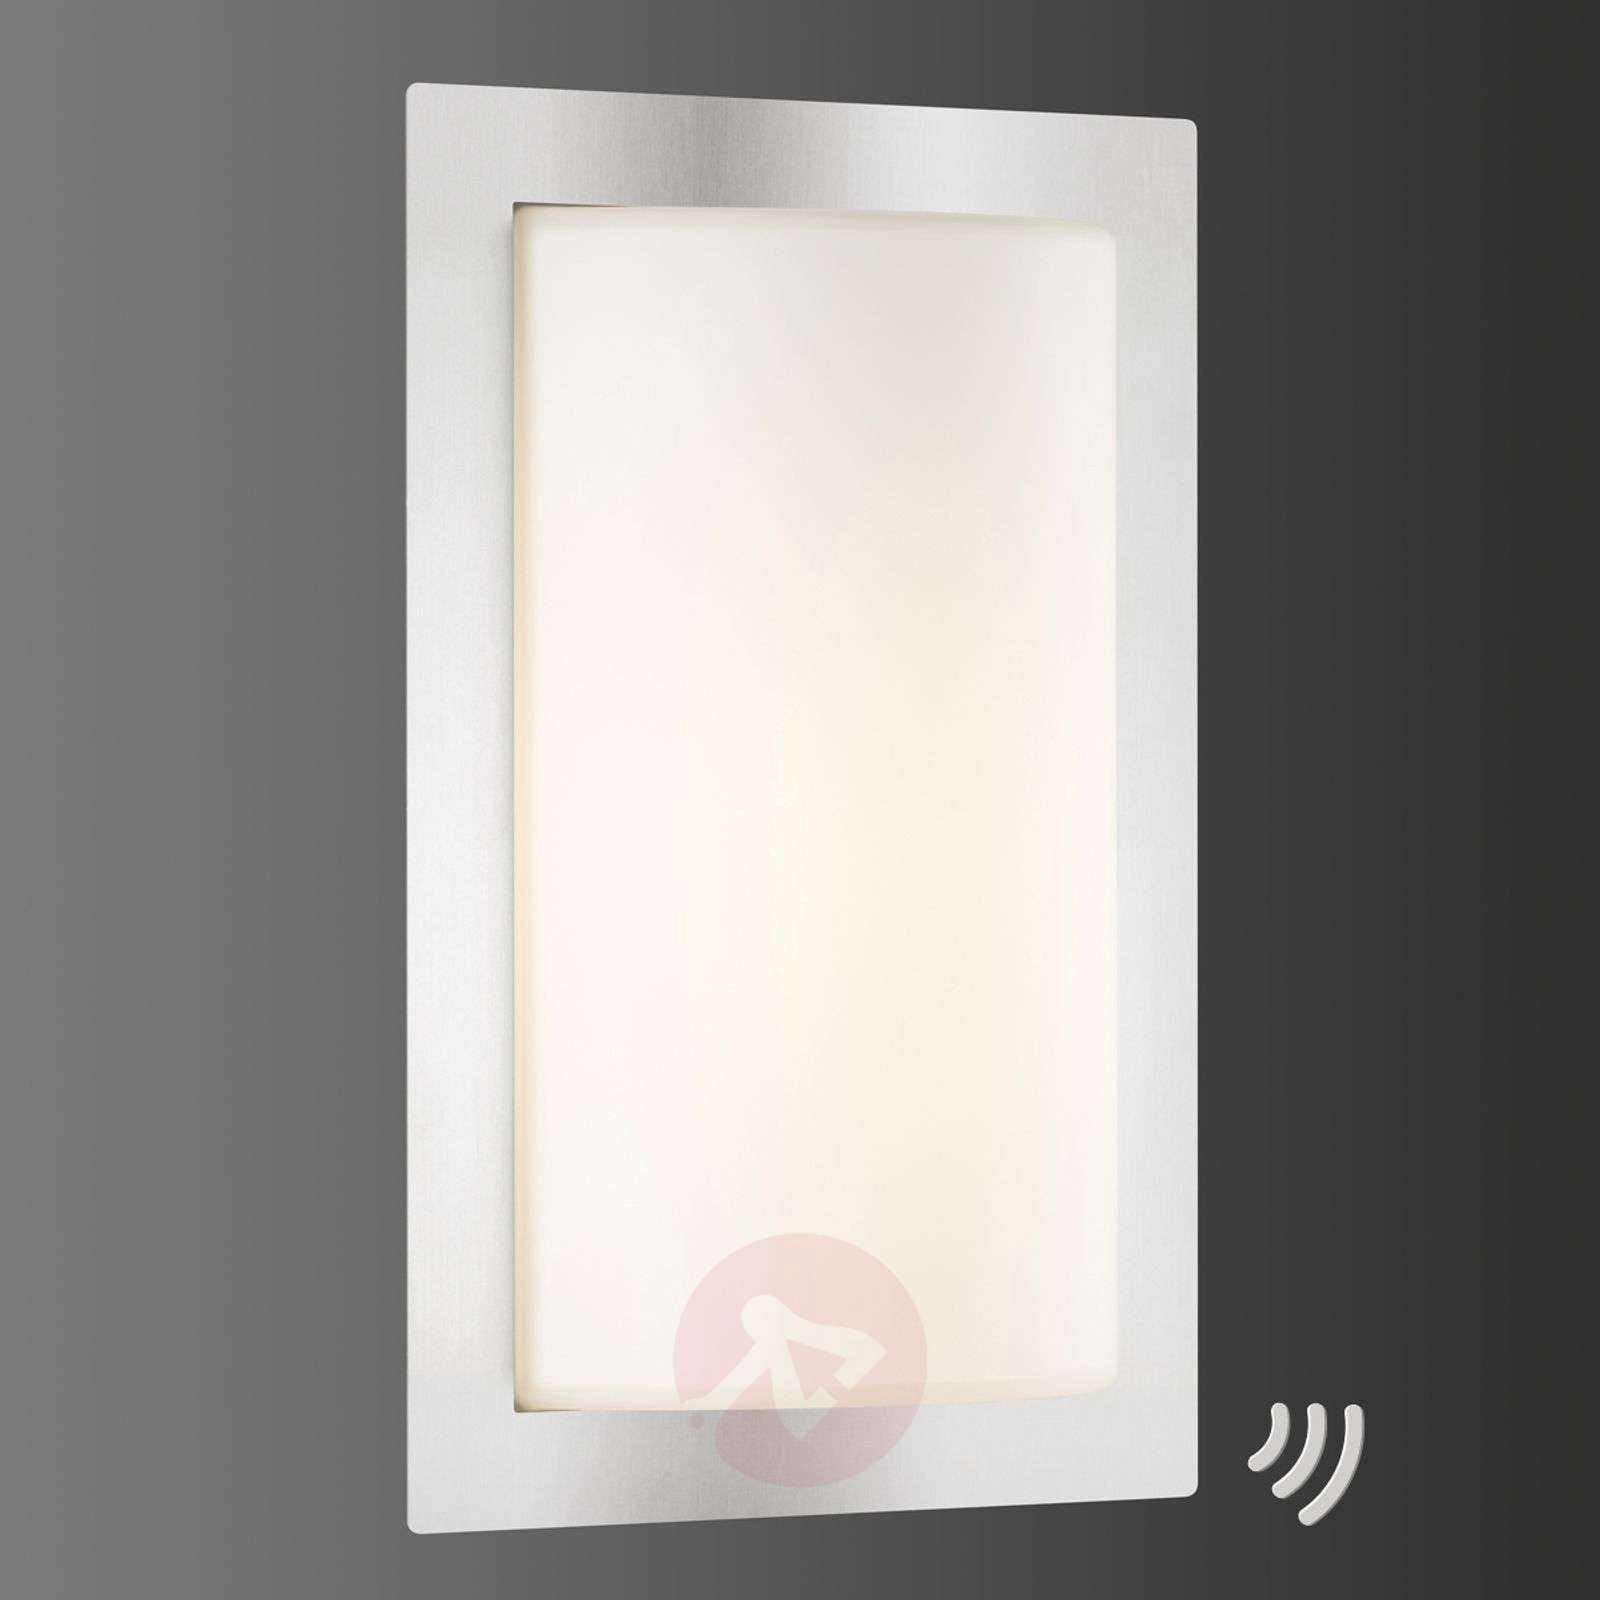 LED outdoor wall light Luis with motion detector-6068083-02